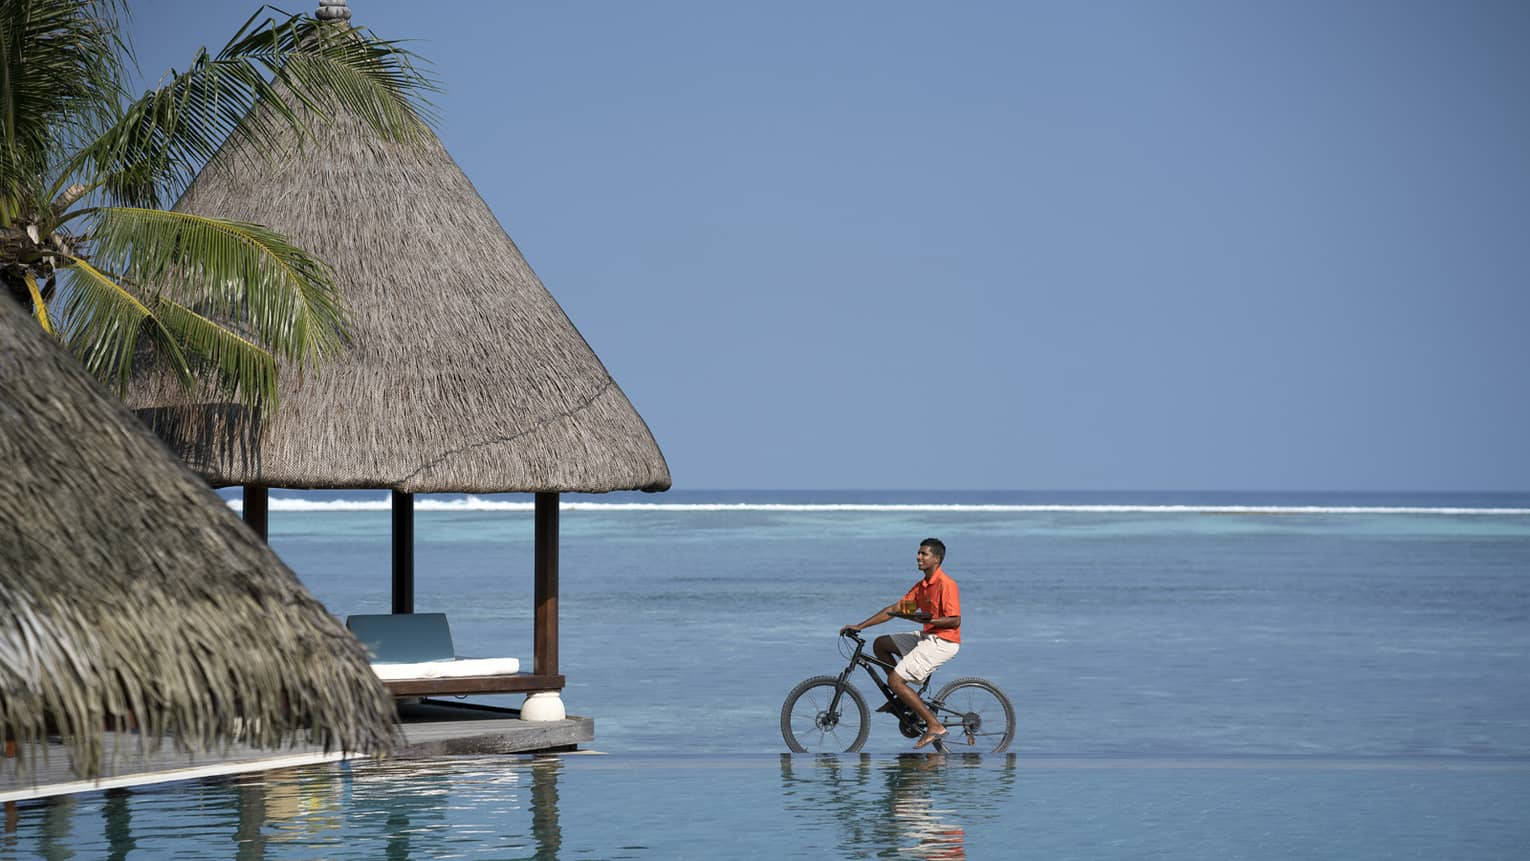 Man riding bicycle in shallow water, view of vast sea behind him